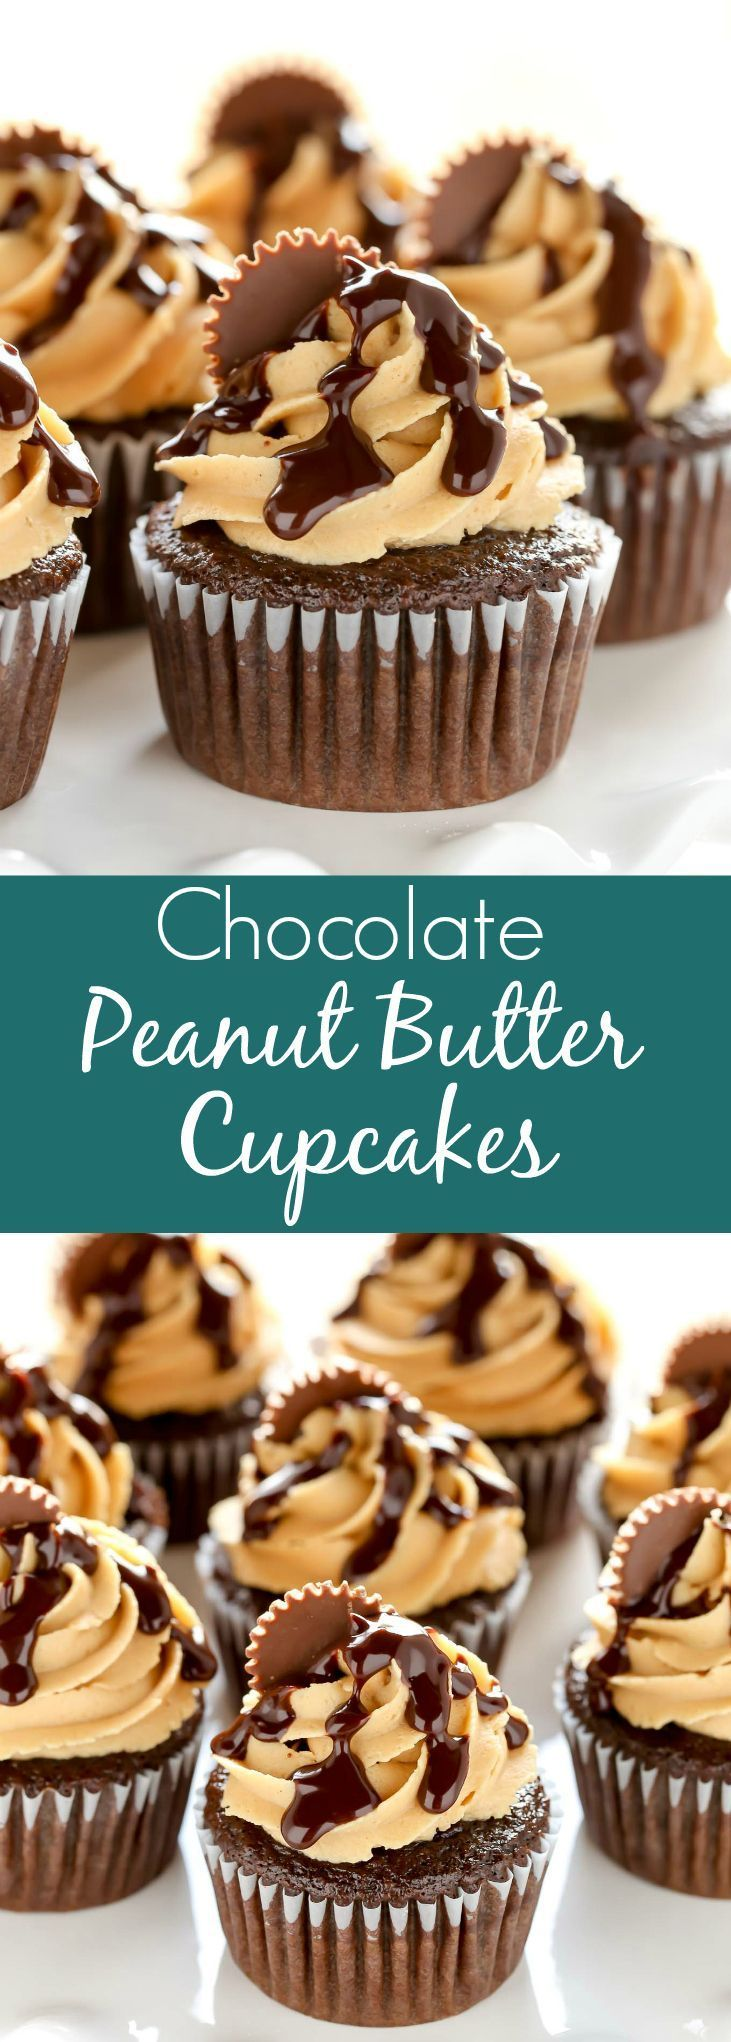 with peanut butter frosting, chocolate ganache, and peanut butter cups ...